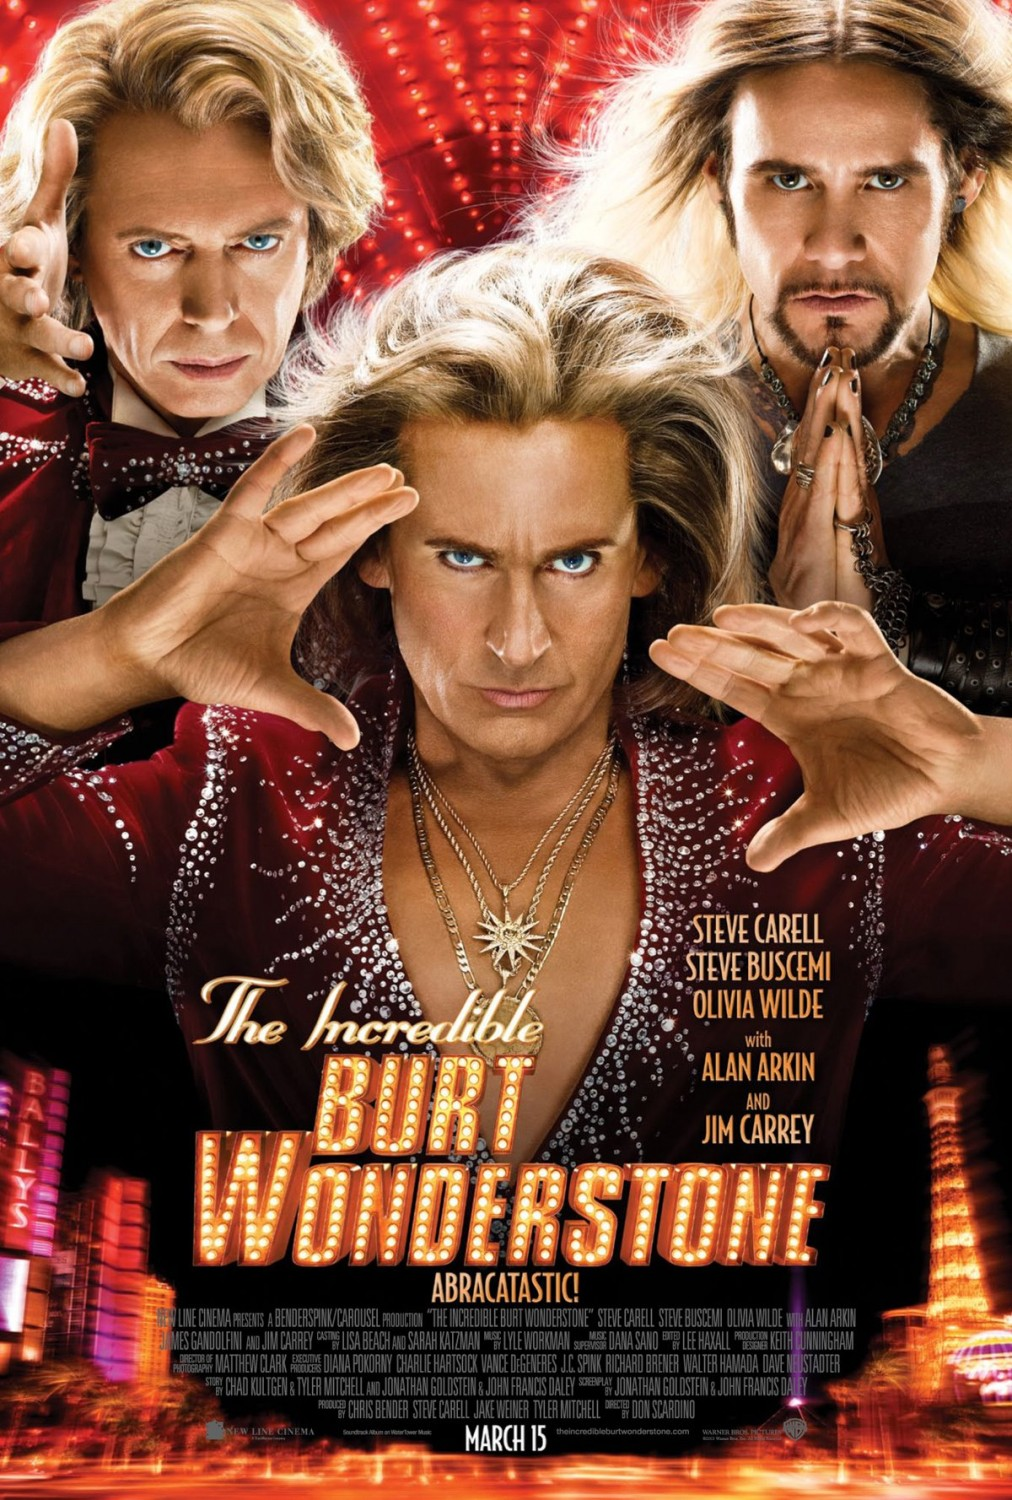 The Incredible Burt Wonderstone - Poster- 005